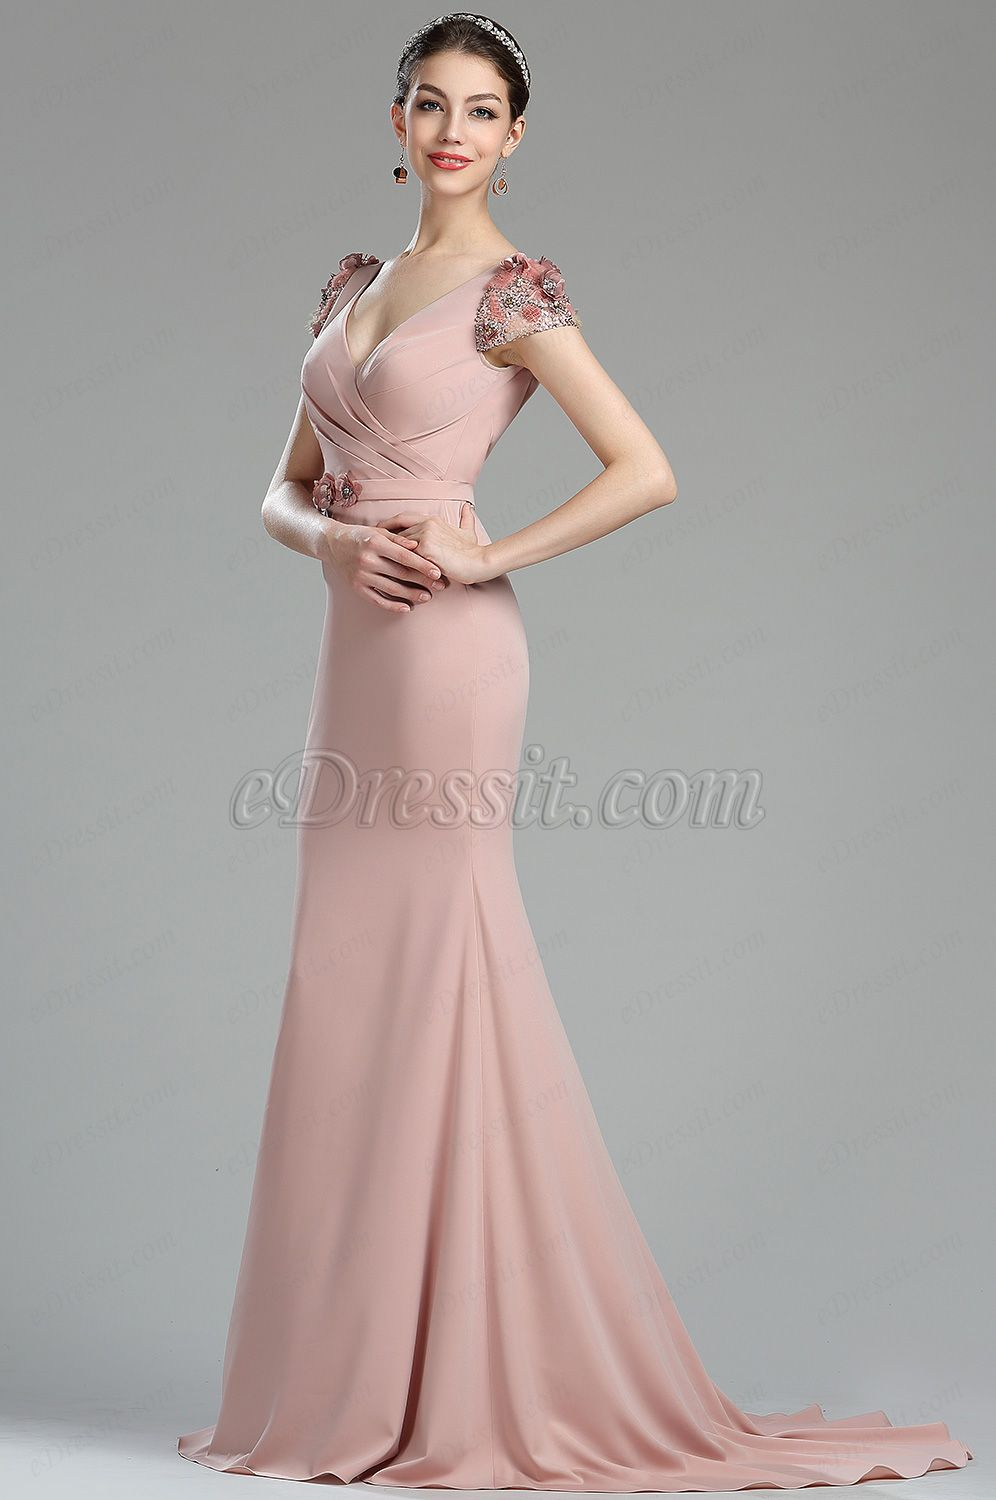 c6267610 Looking for low price but high quality eDressit Capped Sleeves Beaded Floral  Mermaid Women Dress (00174046)? eDressit.com can custom-made for you!